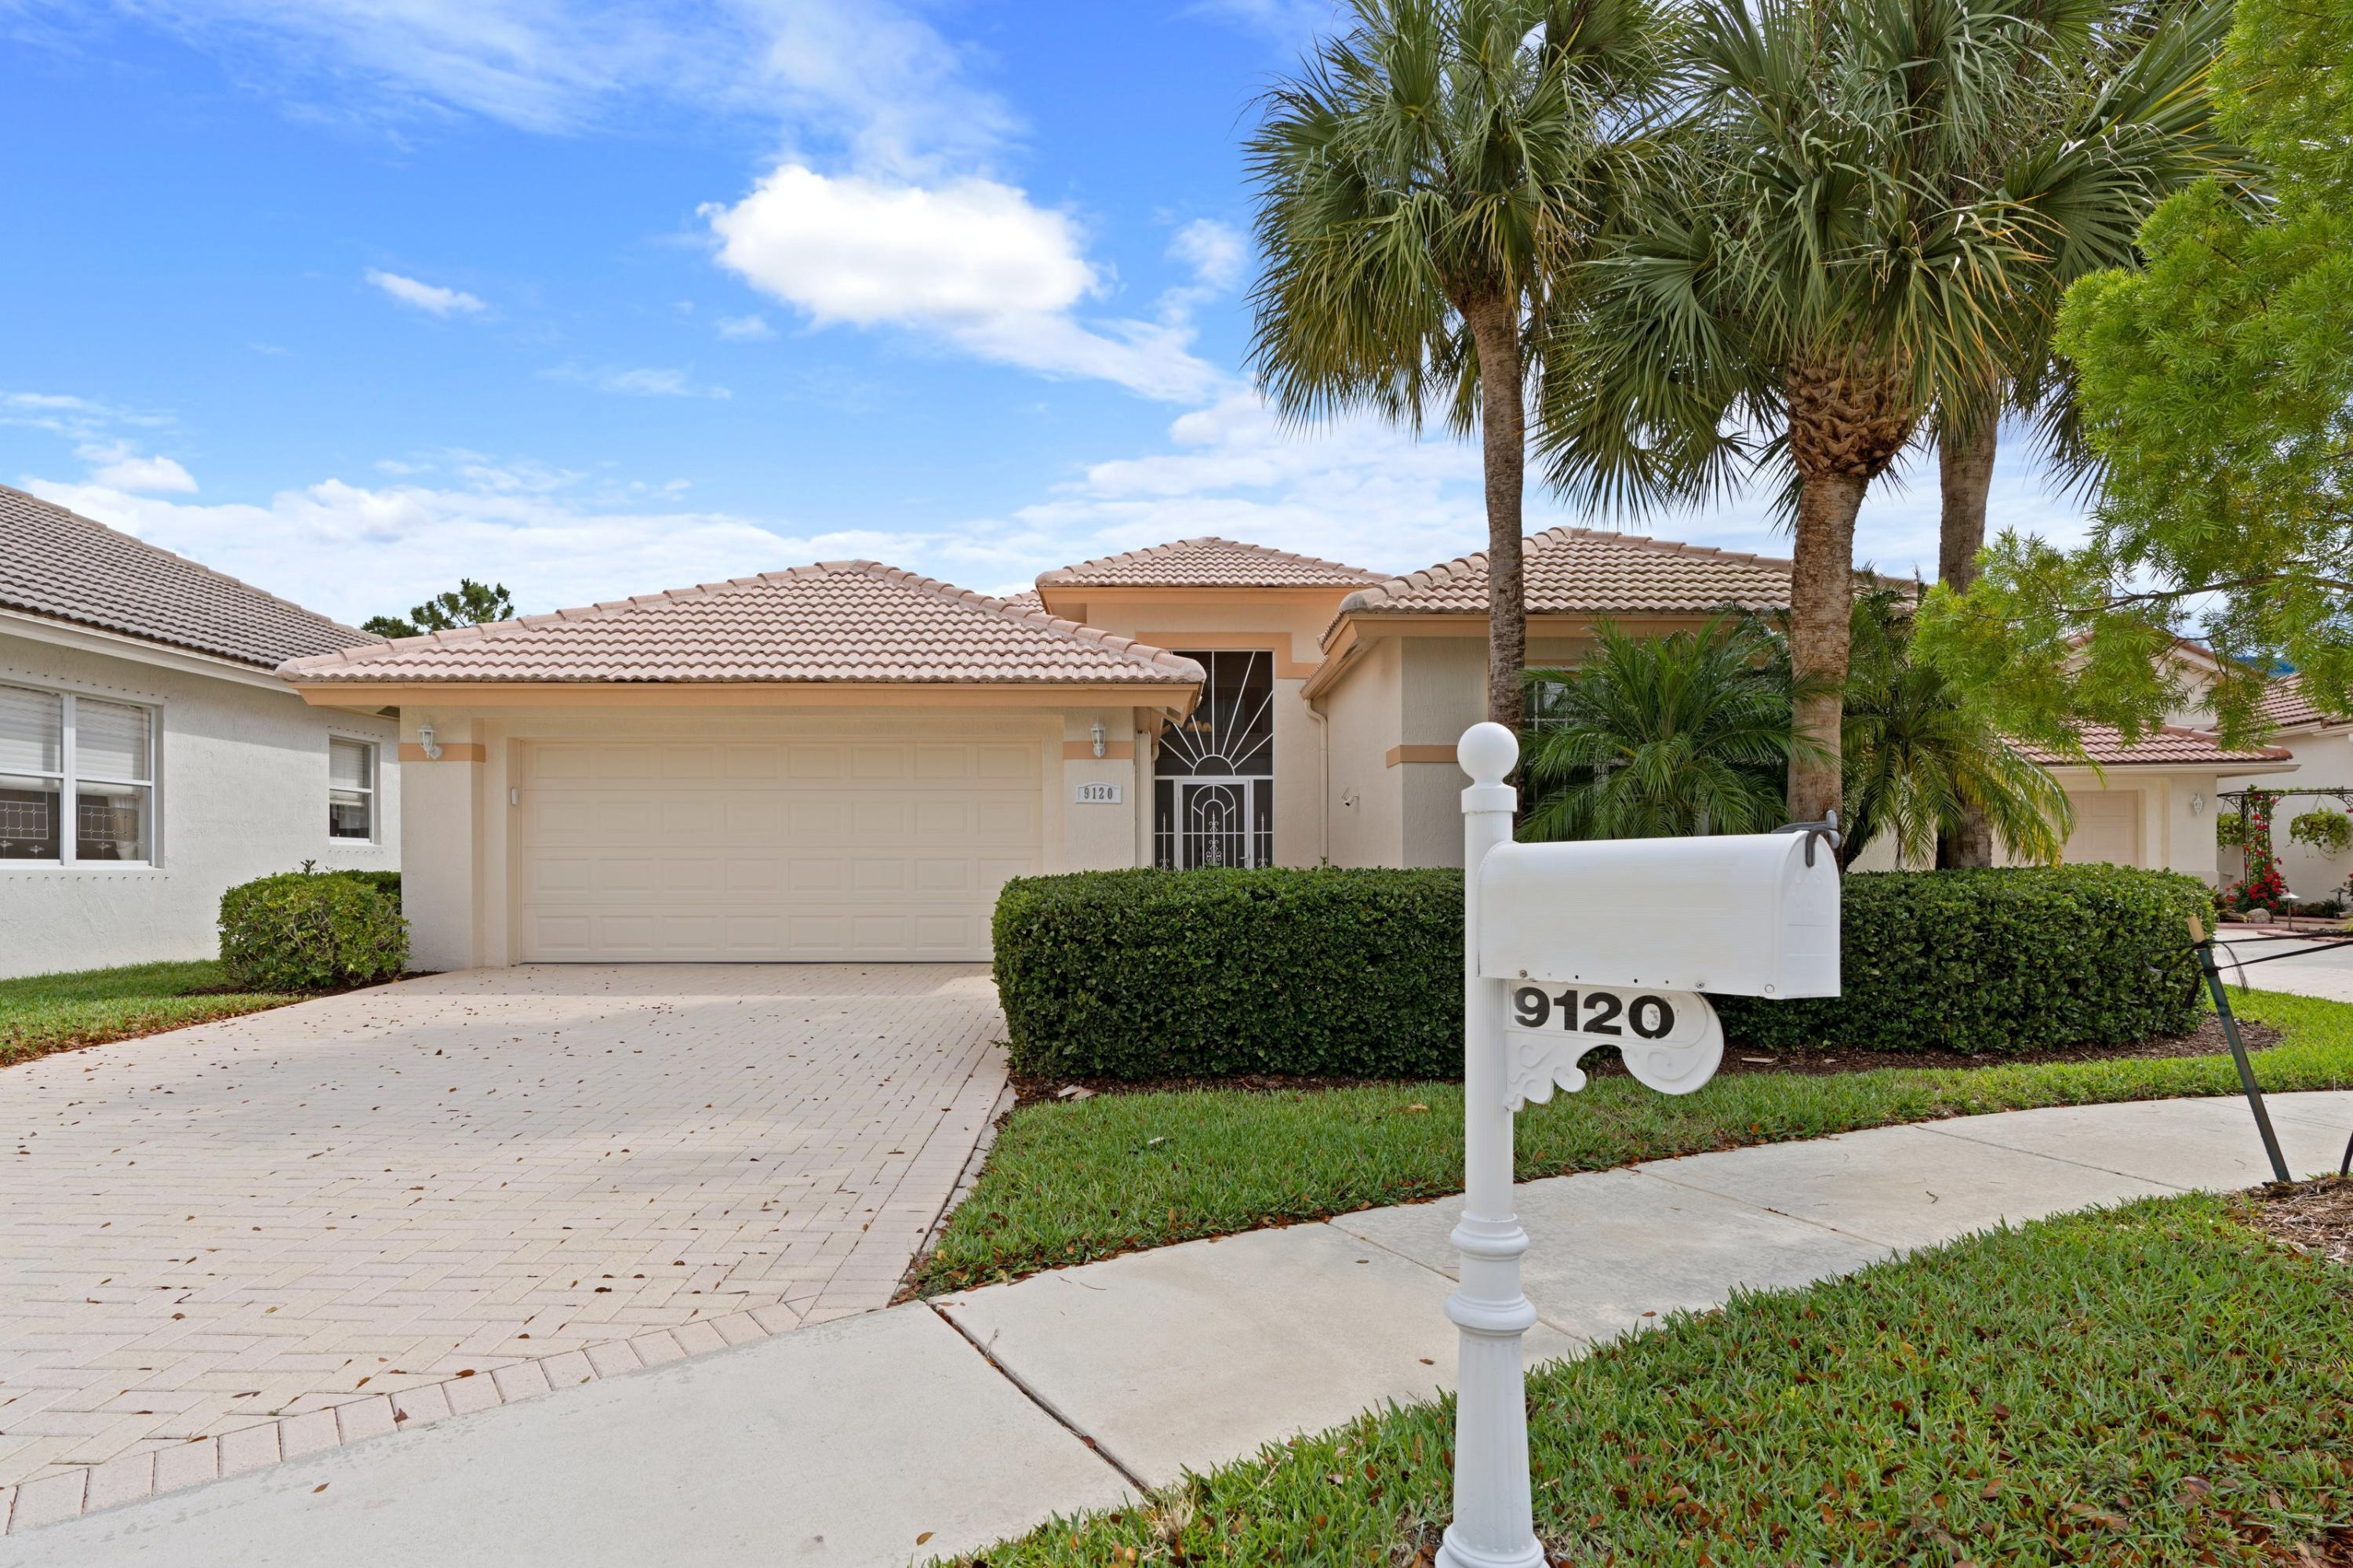 9120  Bay Harbour Circle  For Sale 10713077, FL